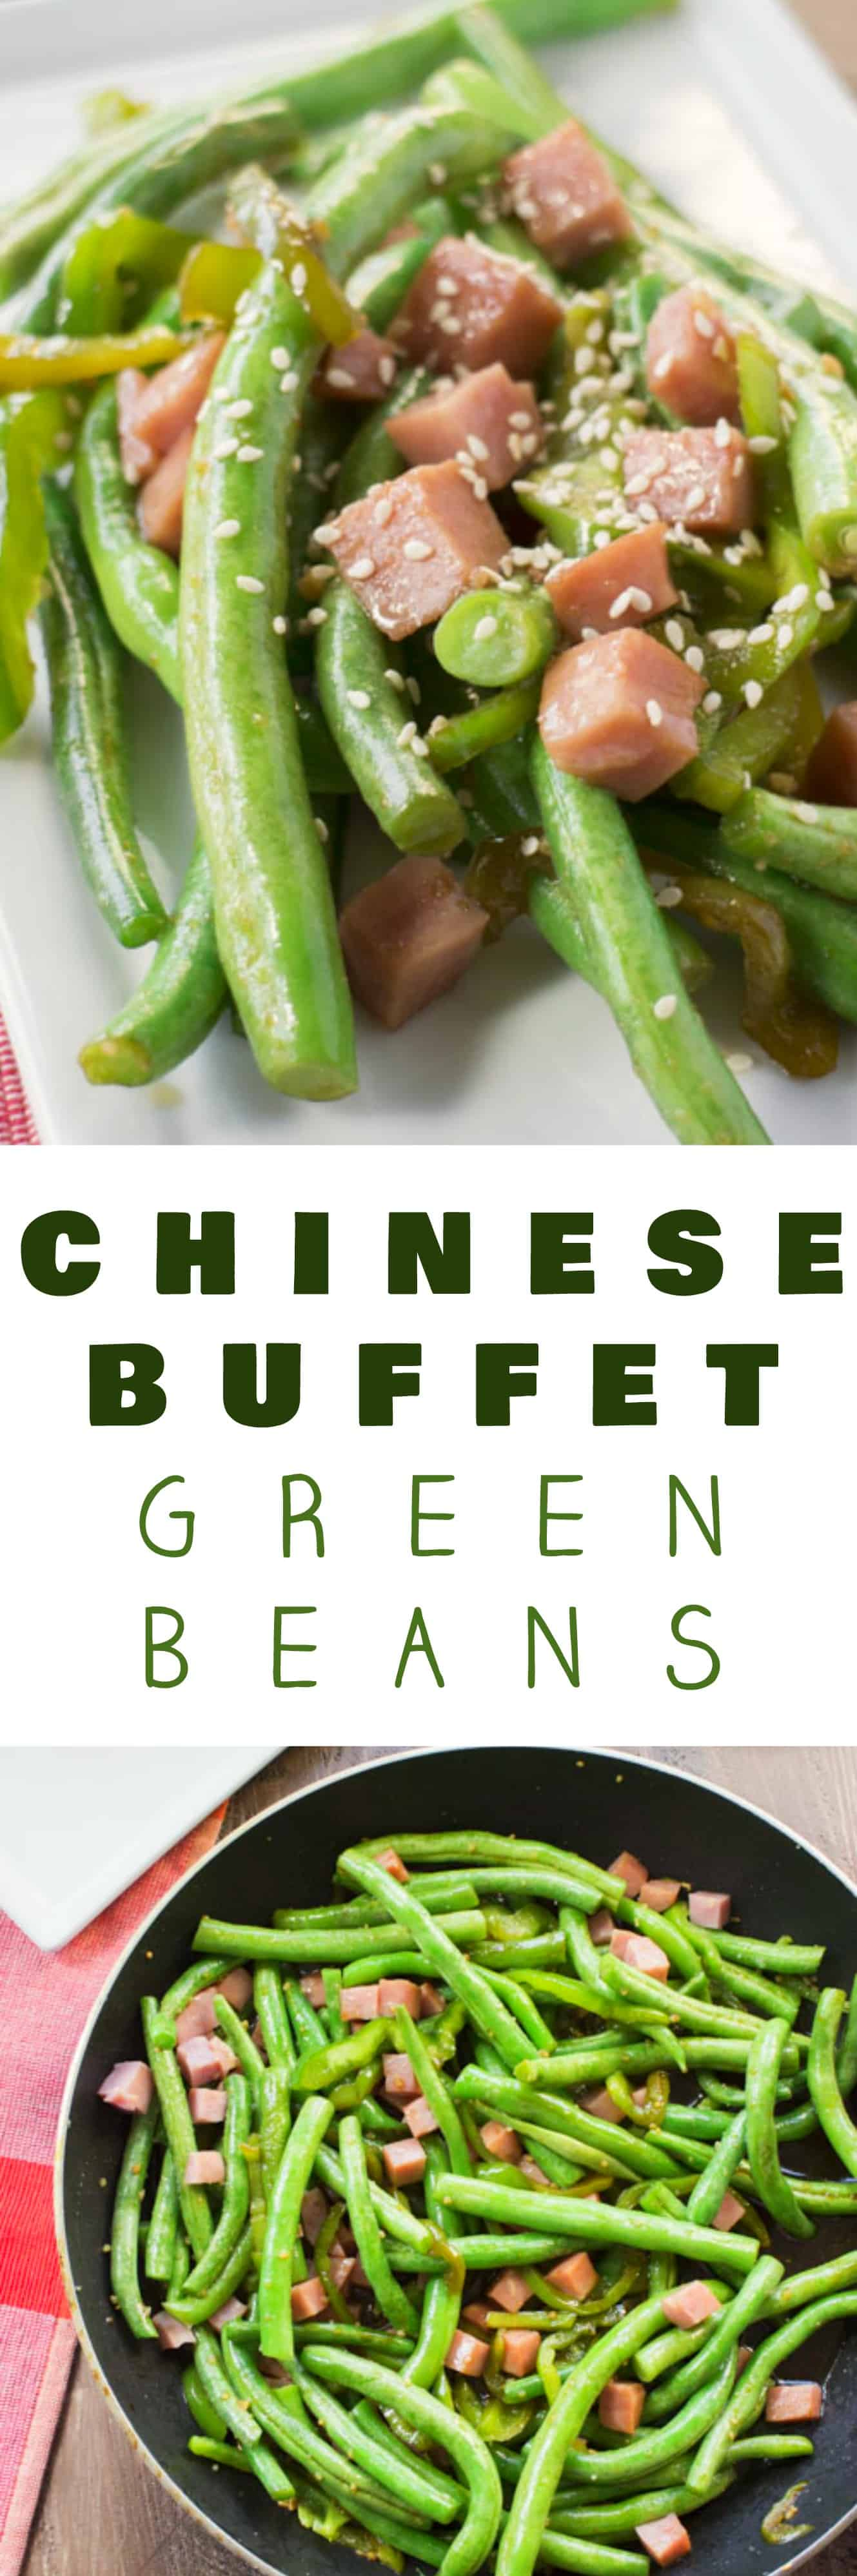 EASY and HEALTHY Chinese Green Beans With Ham recipe! These taste just like the Chinese buffet! A soy sauce garlic sauce is added on top of the beans in this easy to make dish that only takes 15 minutes to make!